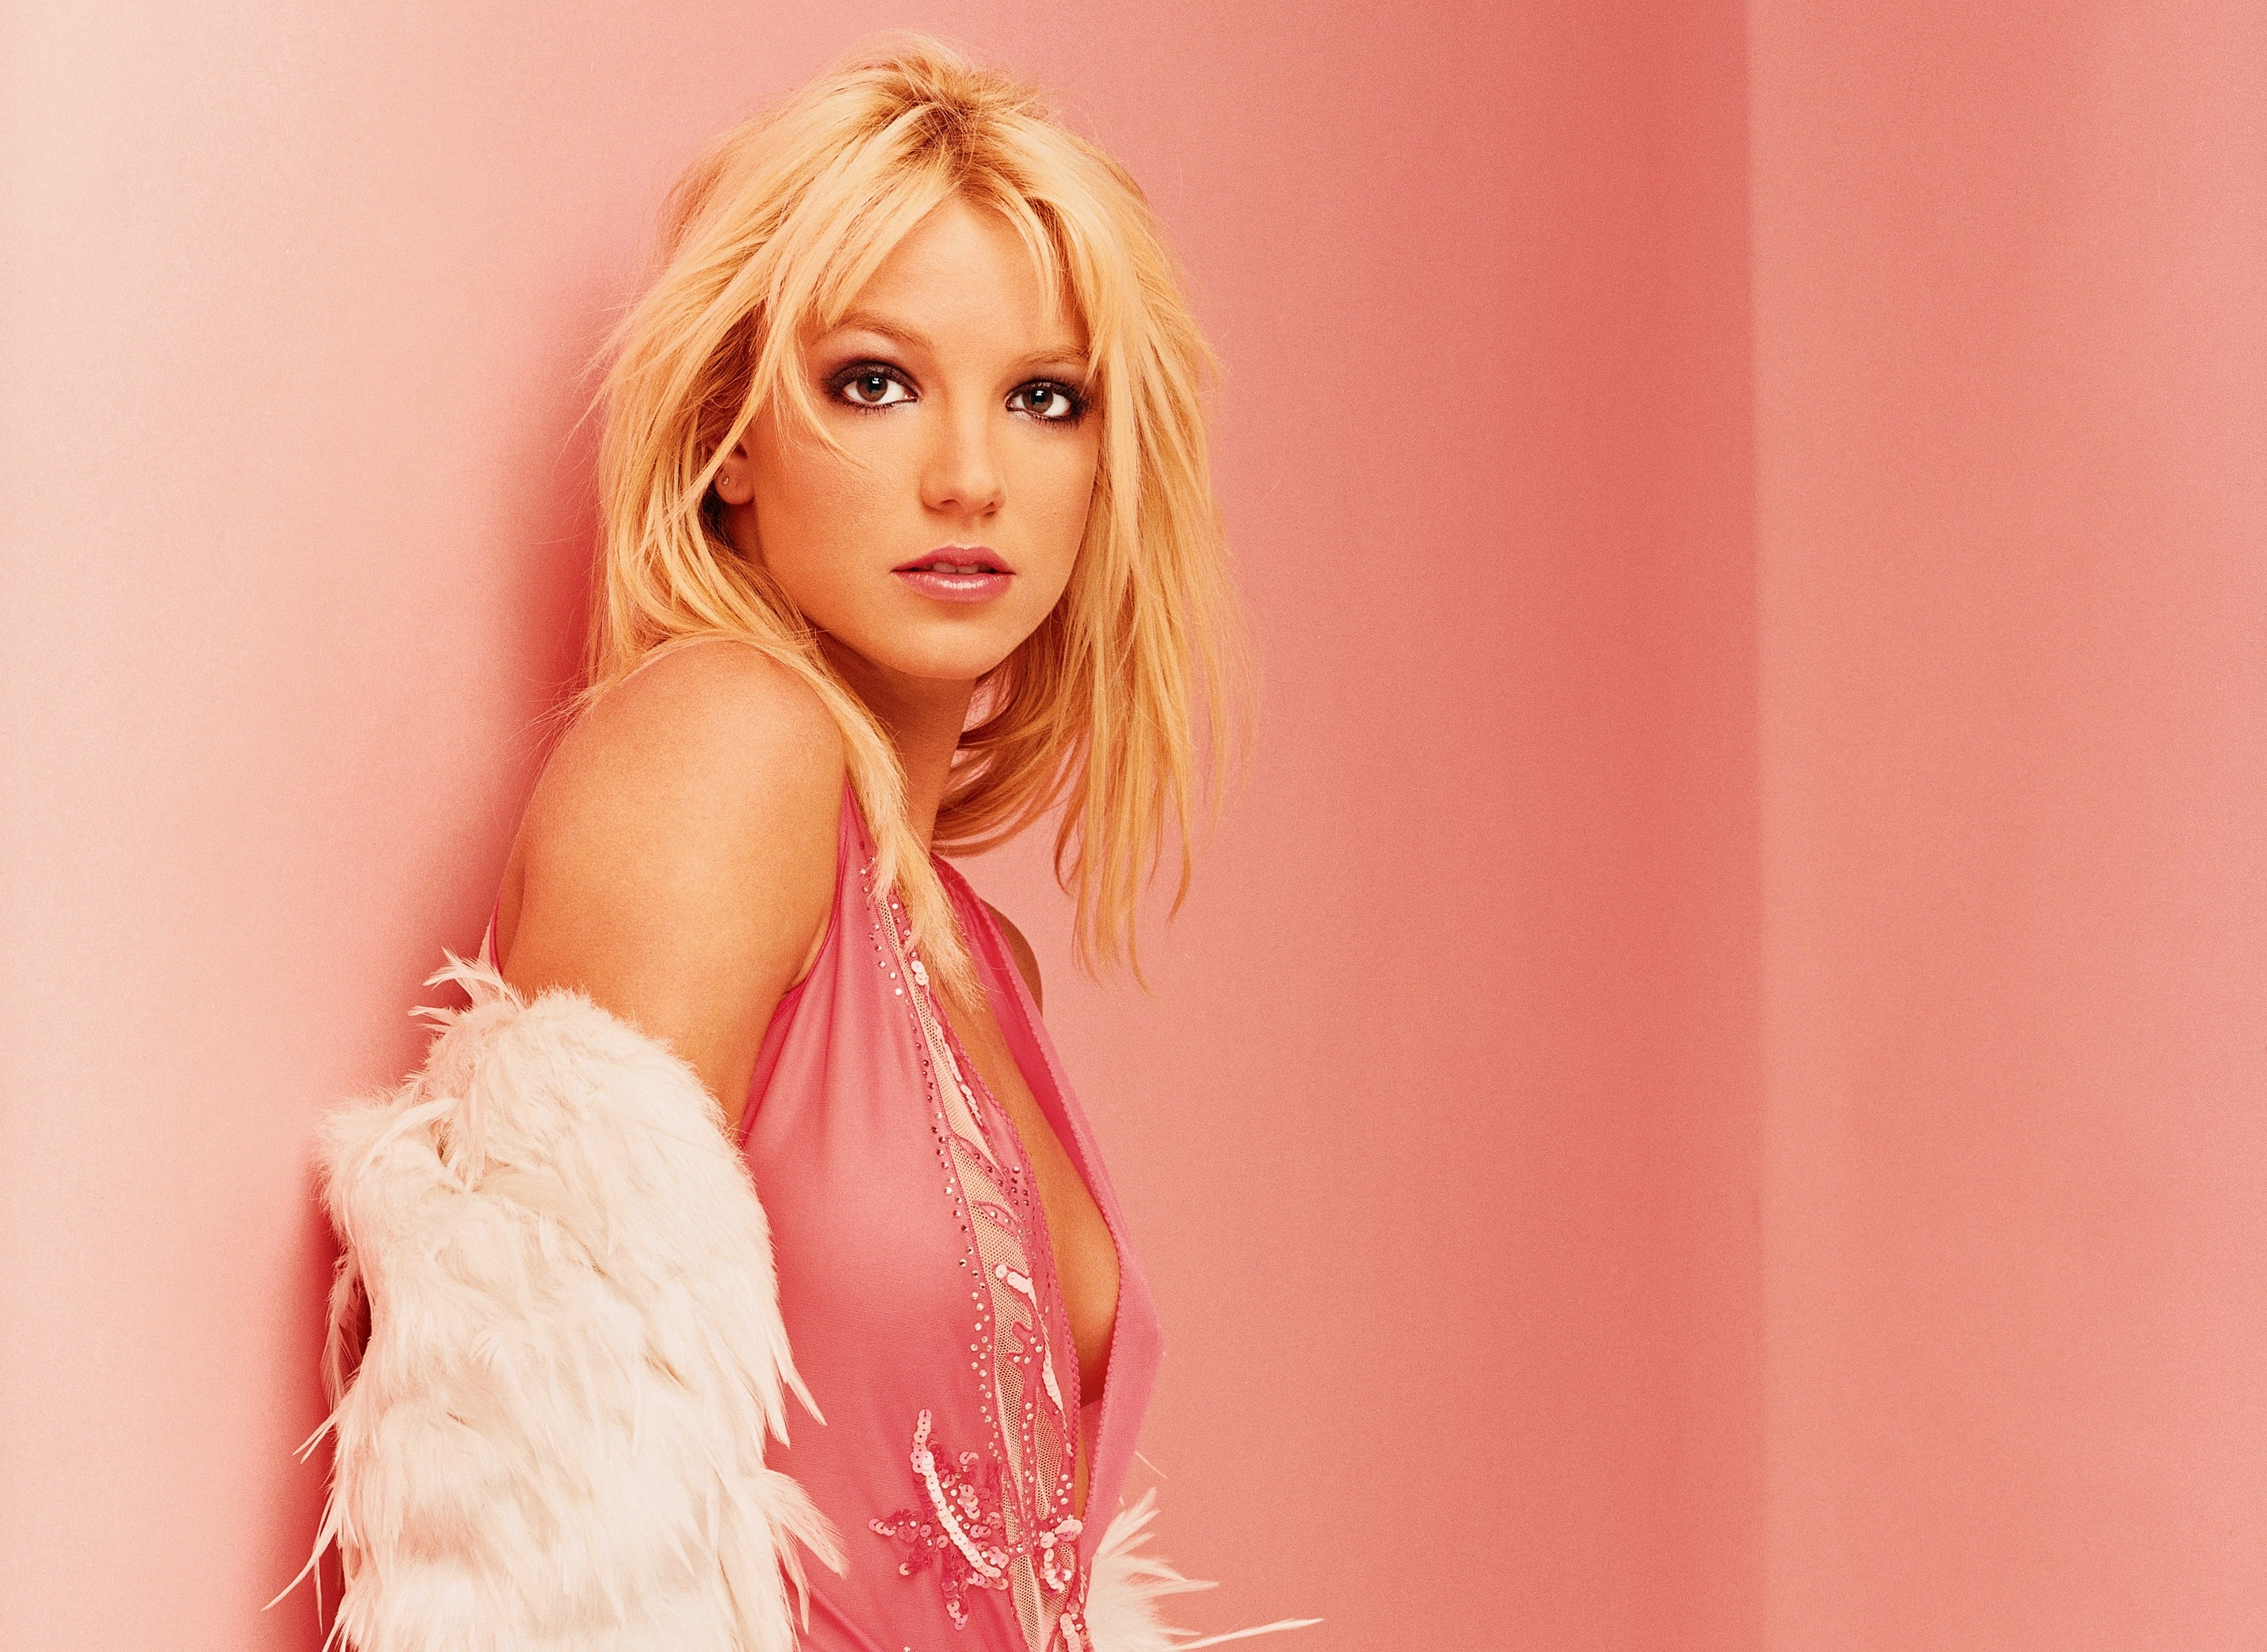 2861x2085 ... Britney Spears HD Wallpapers, Desktop Pics ...